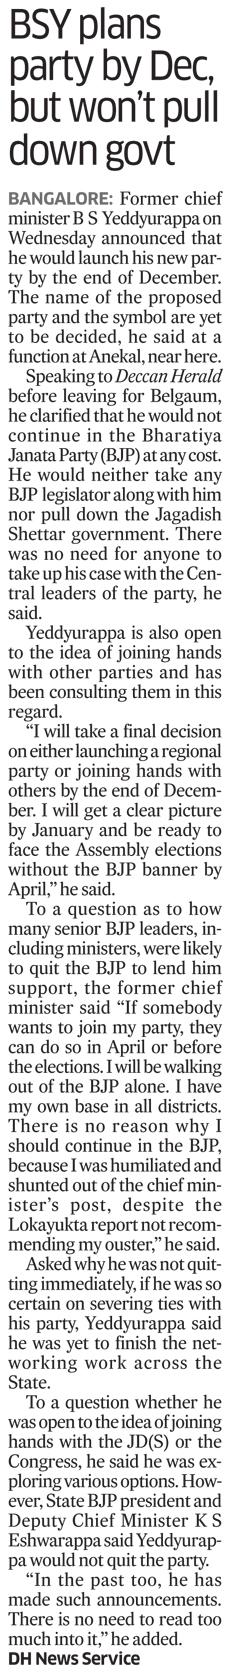 BSY plans party by Dec, but won't pull down govt